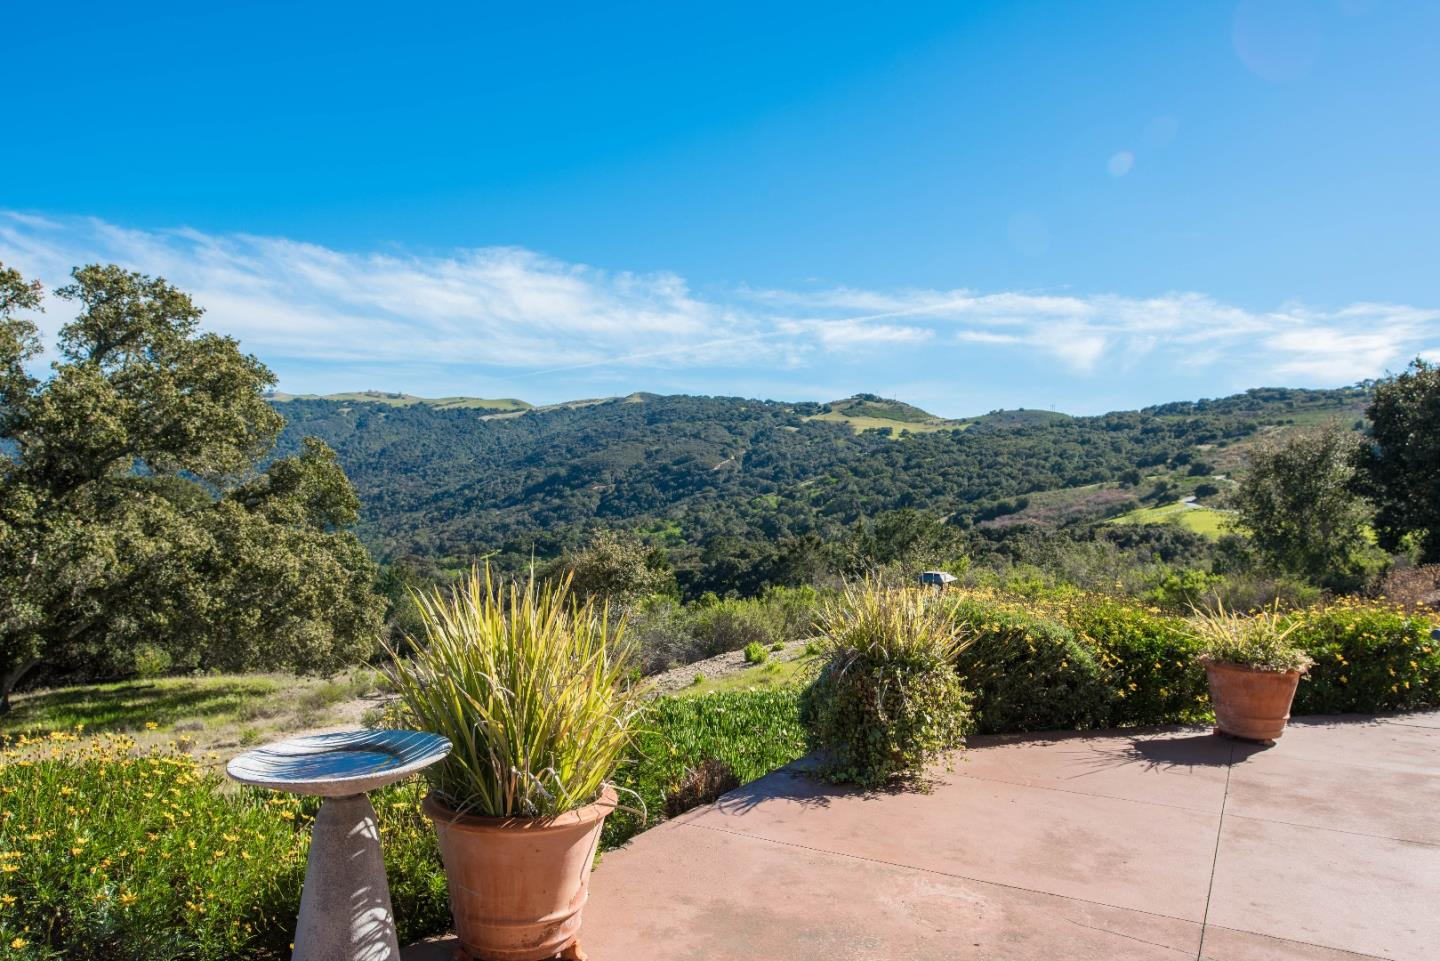 Additional photo for property listing at 26252 Rinconada Drive  Carmel Valley, Kalifornien 93924 Vereinigte Staaten